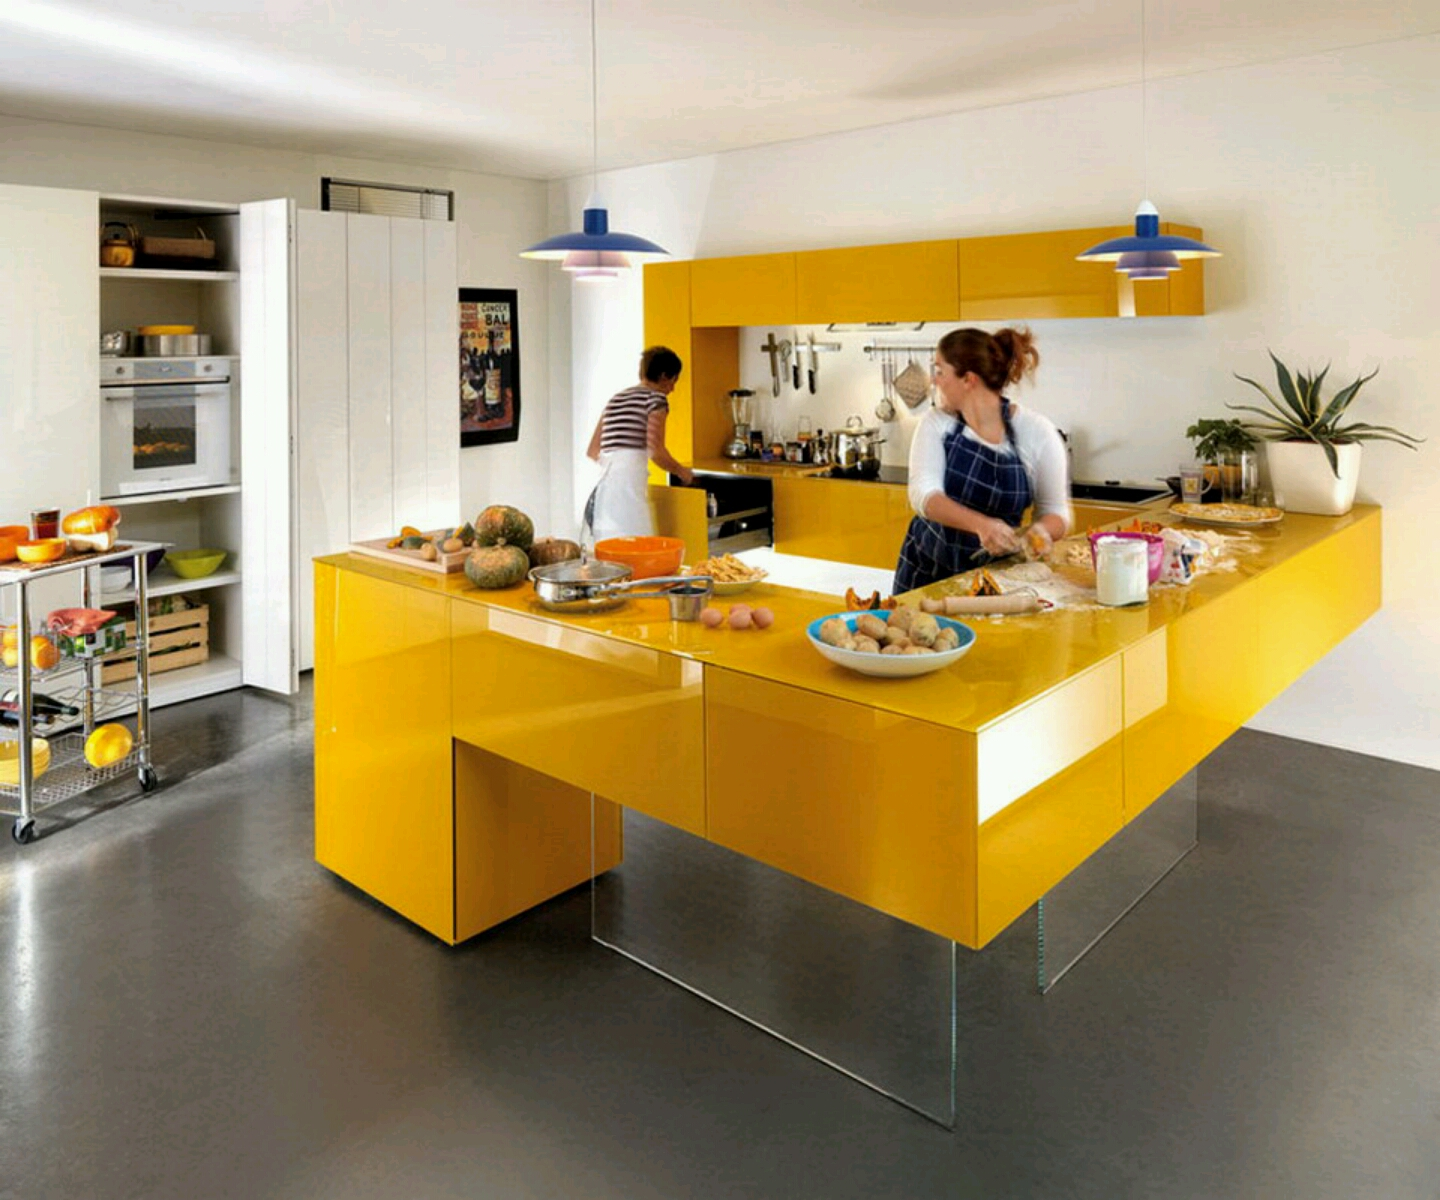 Modern kitchen cabinets designs ideas furniture gallery for Latest kitchen furniture design